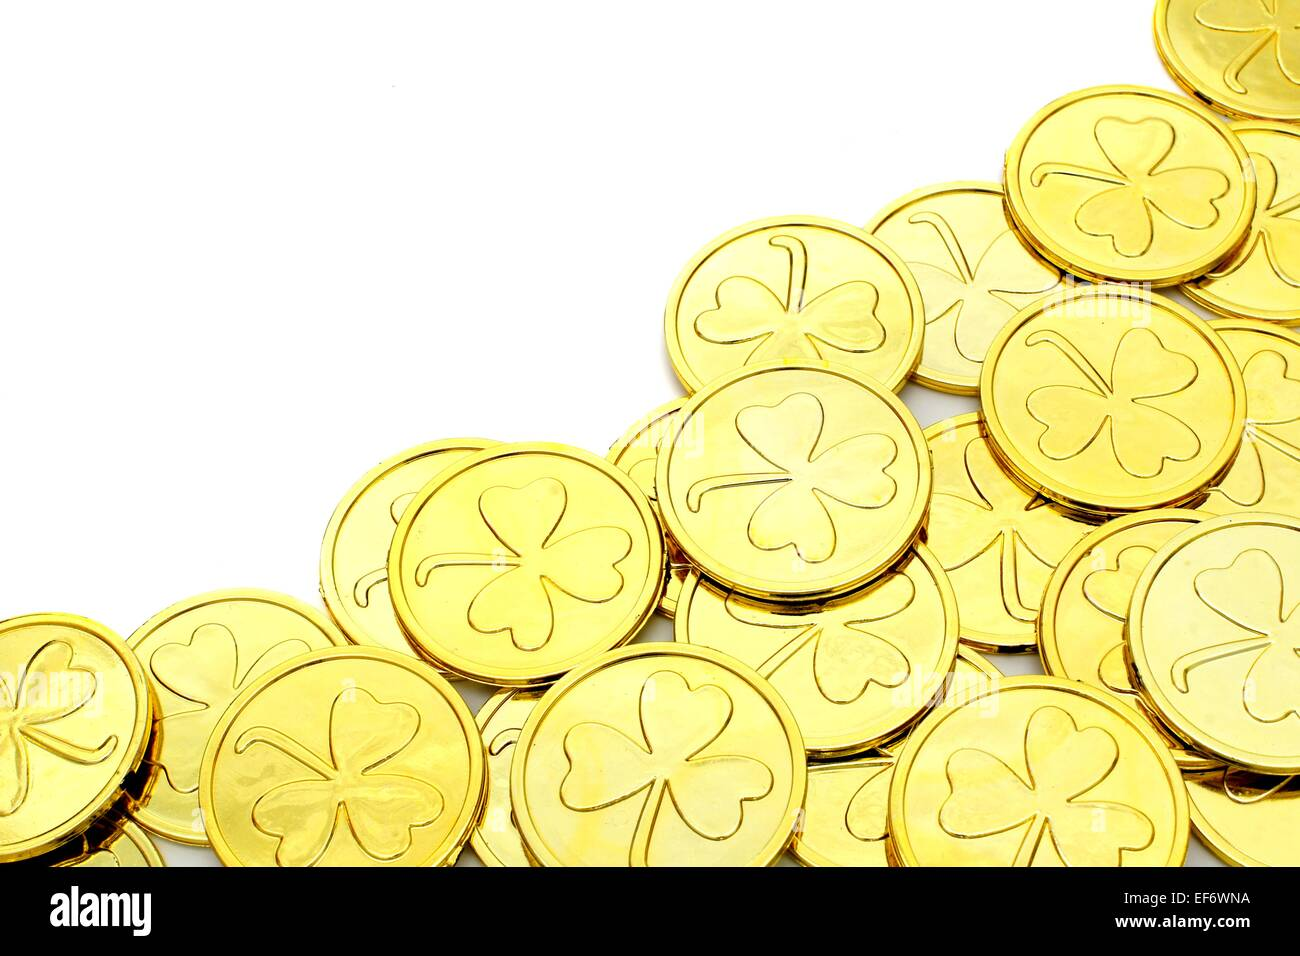 St Patricks Day Gold Coin Corner Border Over A White Background